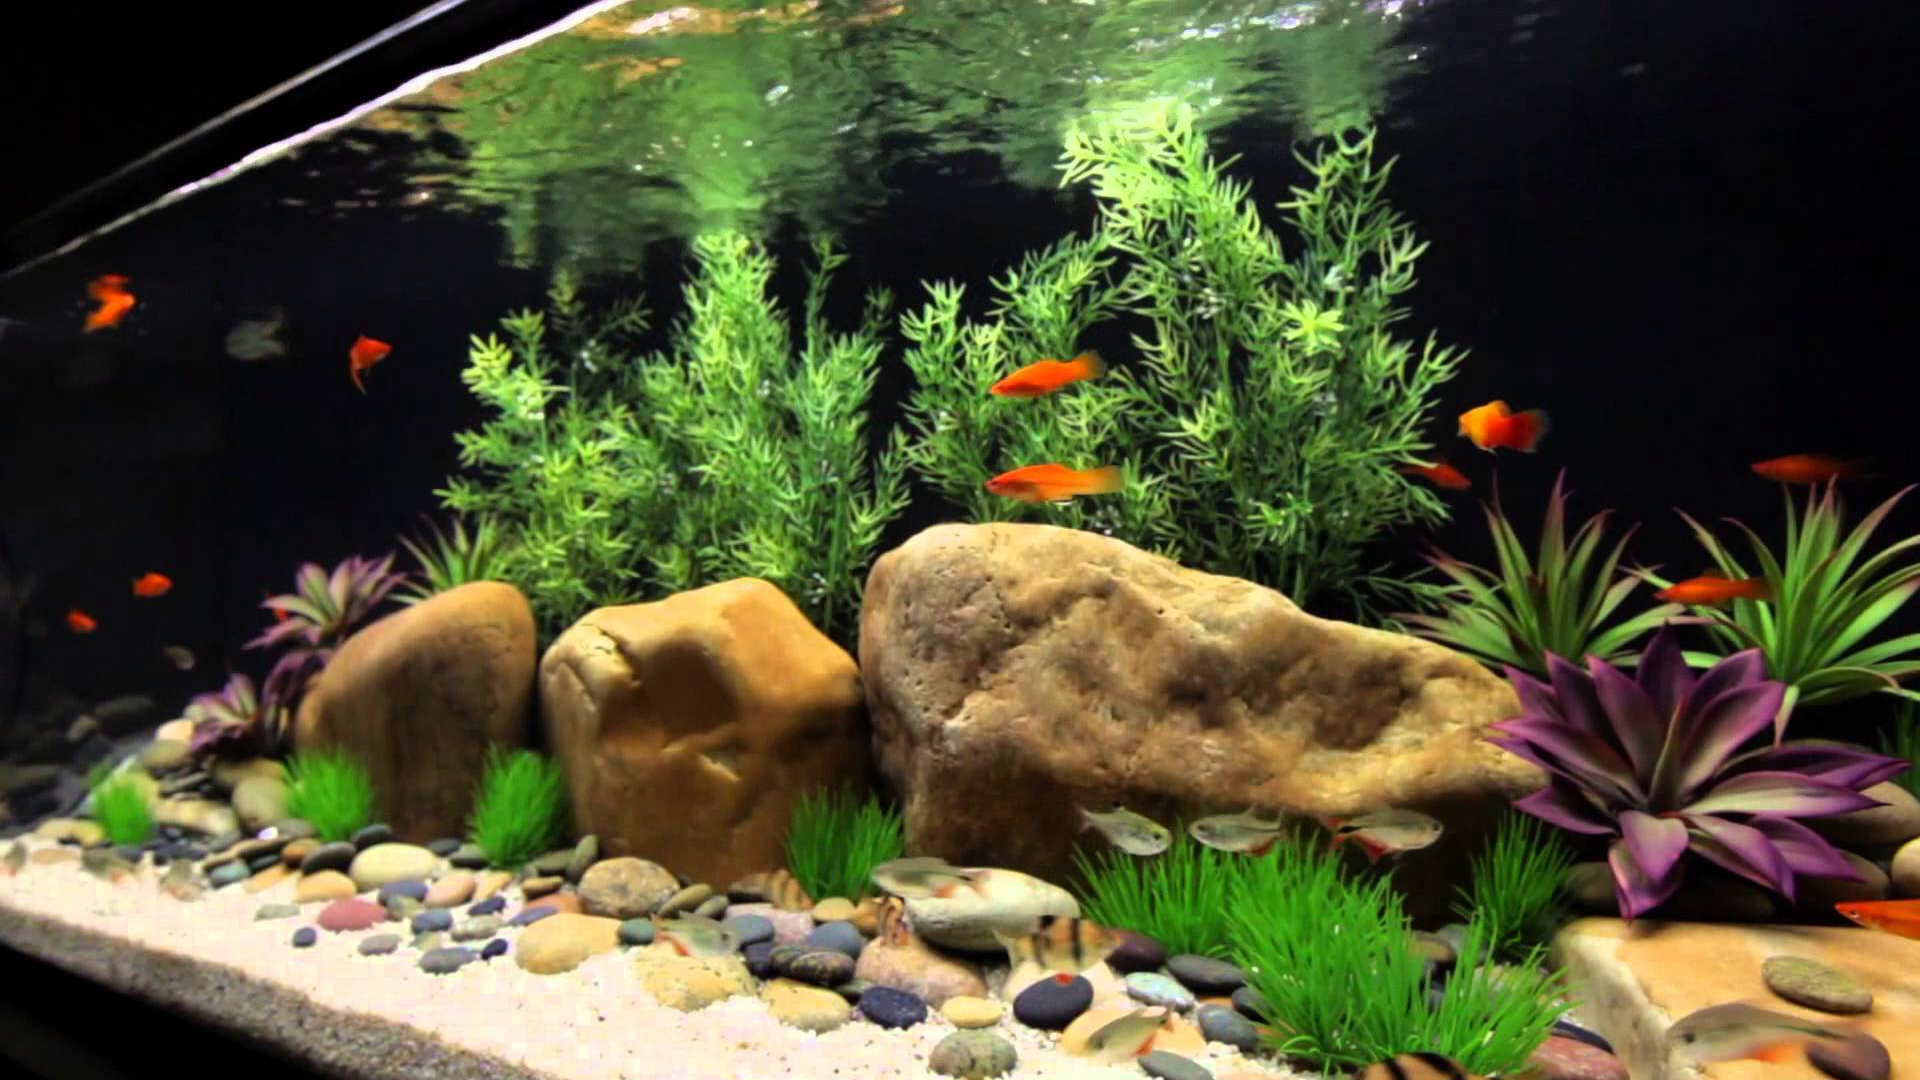 The ultimate freshwater aquarium check list